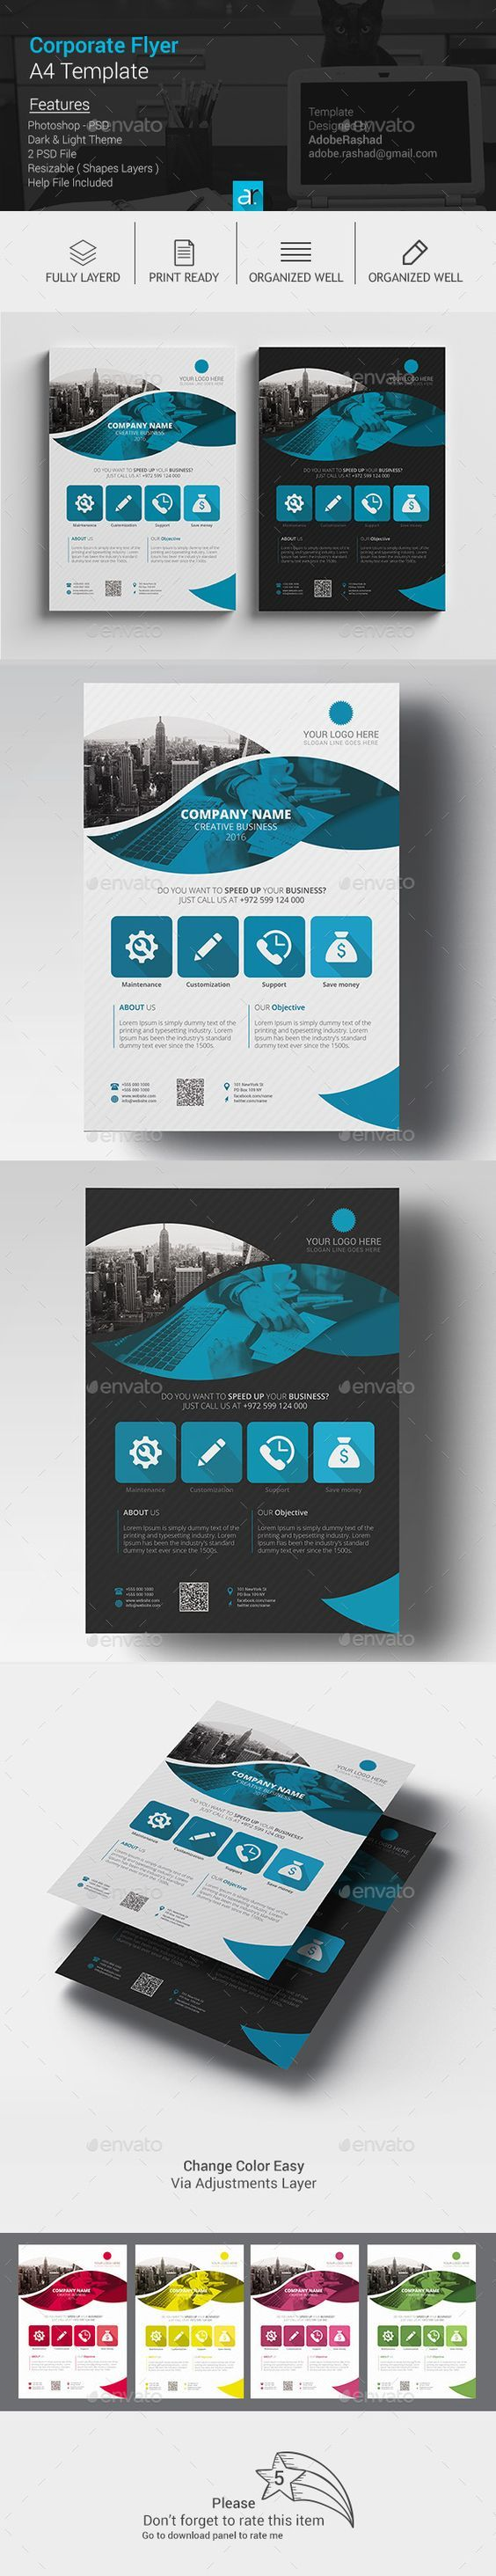 A4 Corporate Flyer Template PSD. Download here: graphicriver.net/...